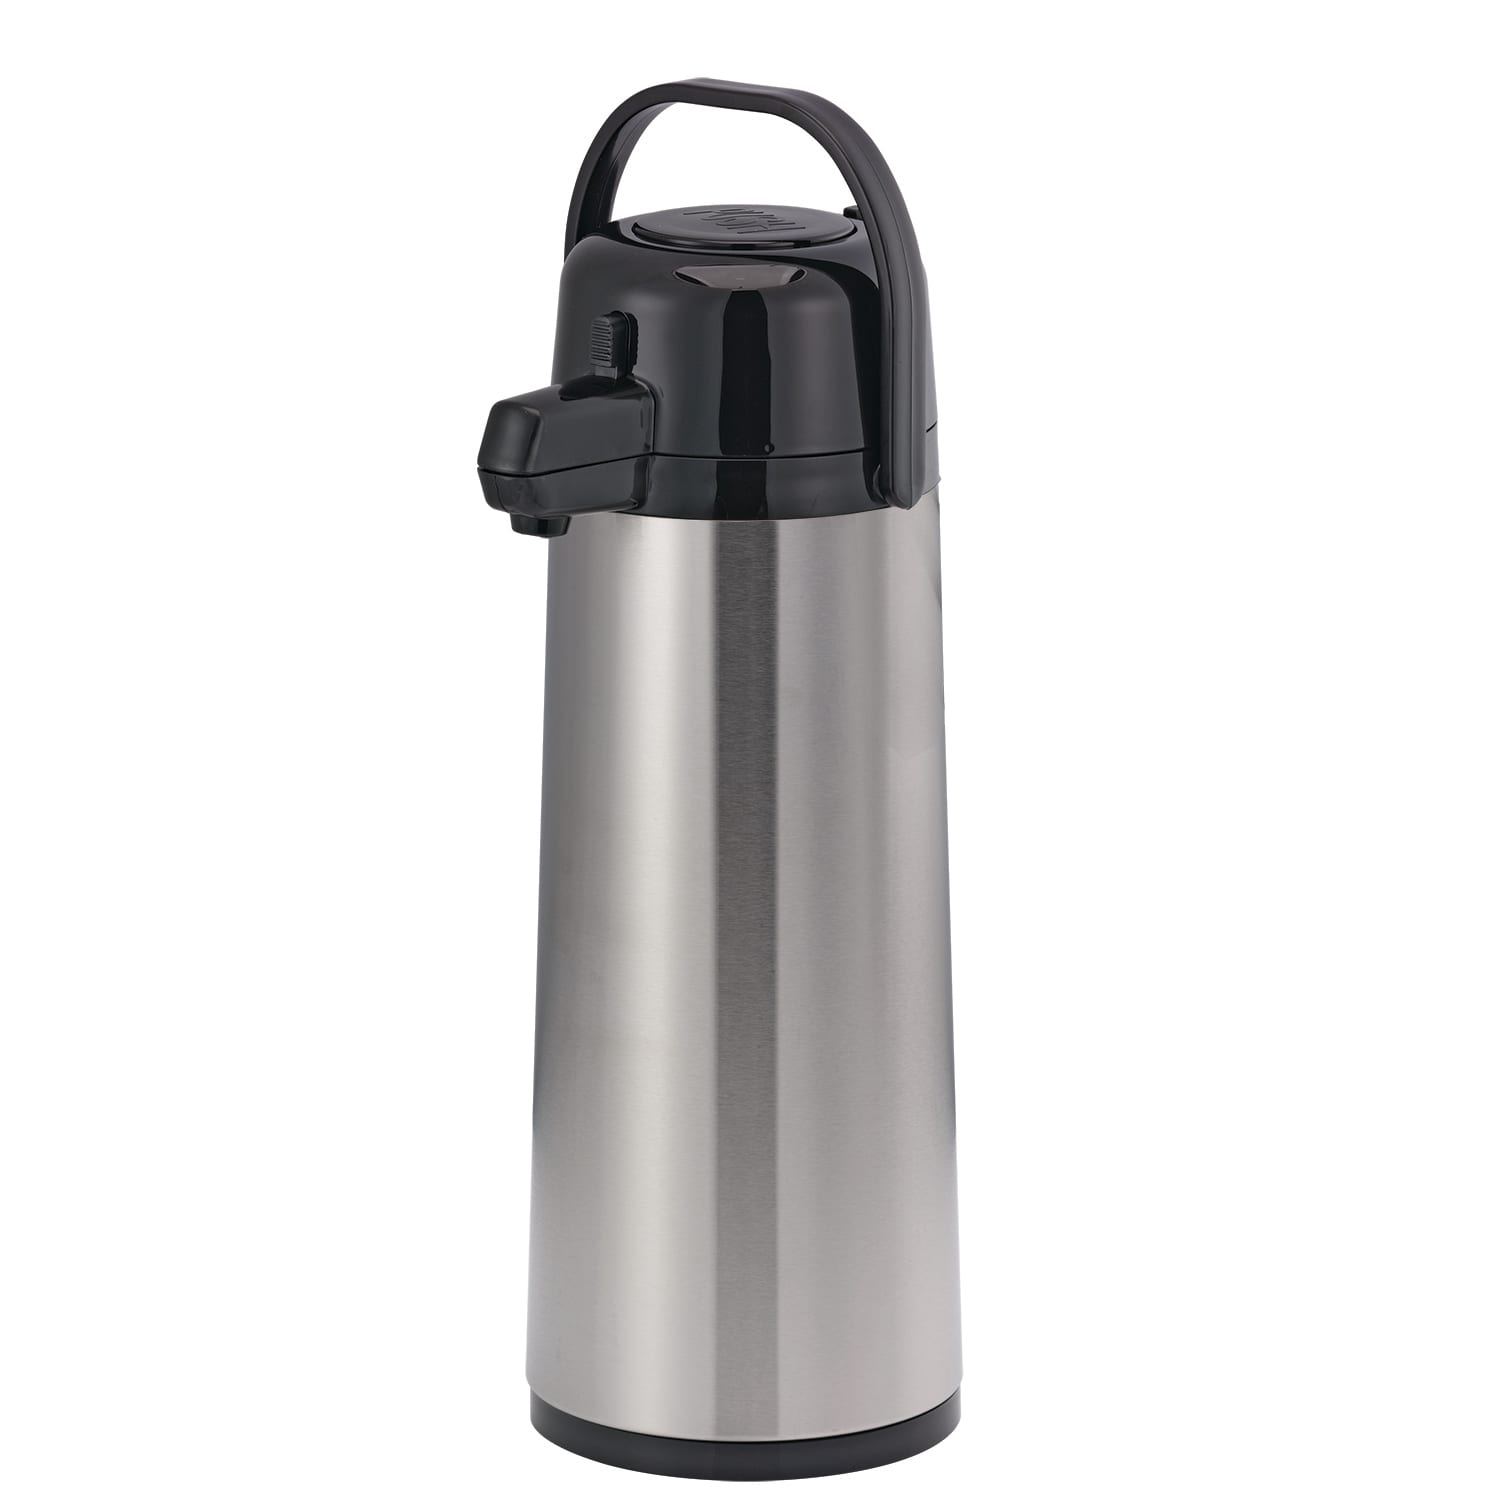 Service Ideas ECA25S 2.5-liter Insulated Airpot w/ Replaceable Liner, Stainless, Black